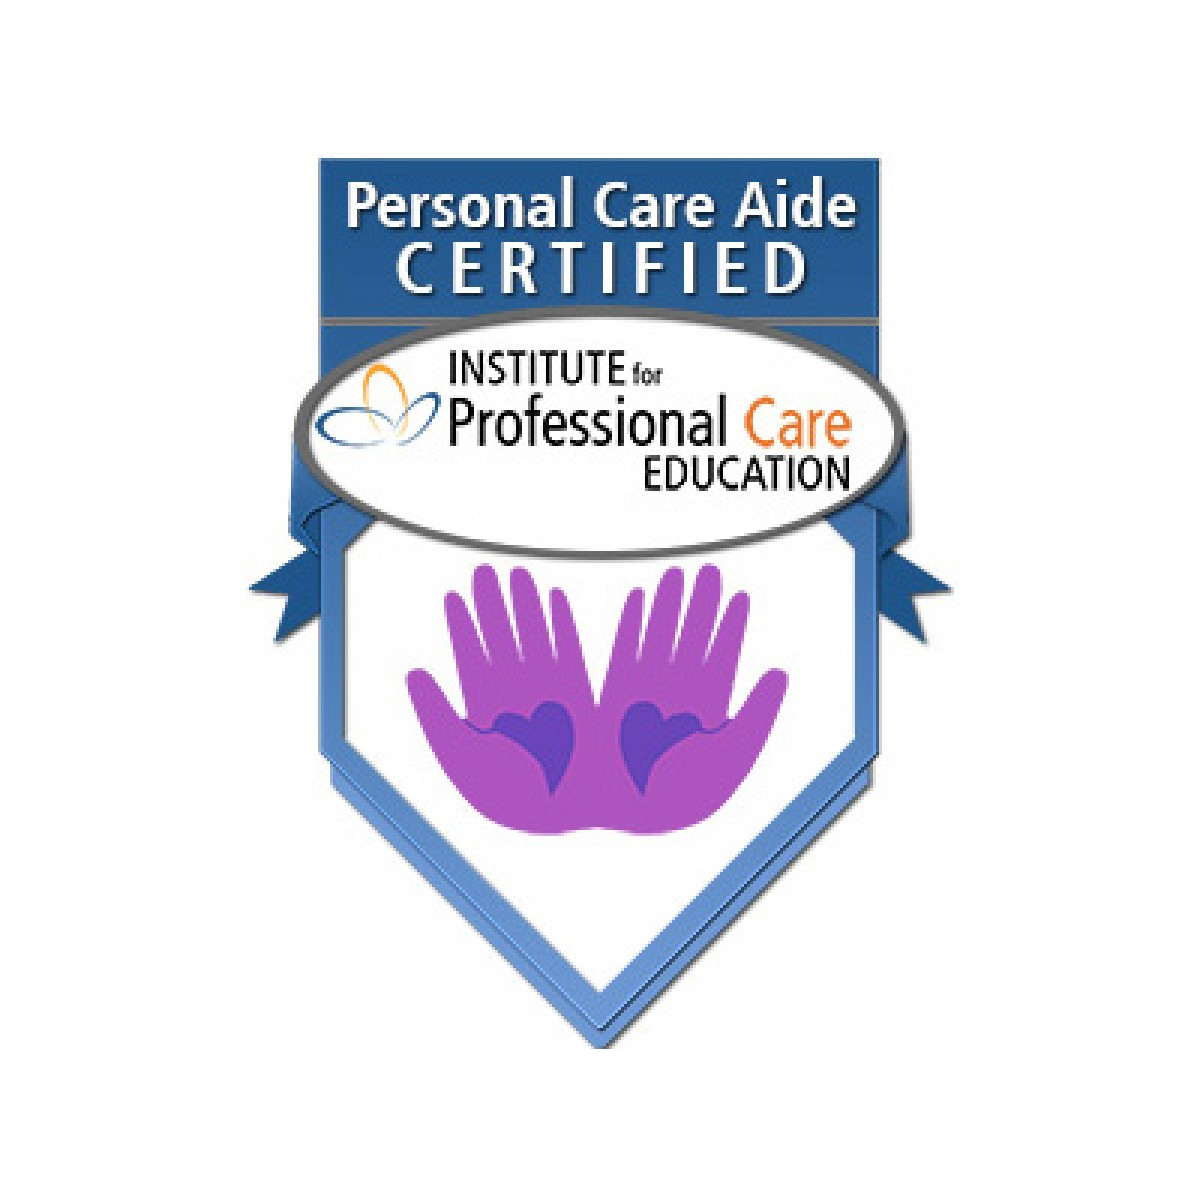 Personal care aide certification aquire training solutions more views xflitez Choice Image